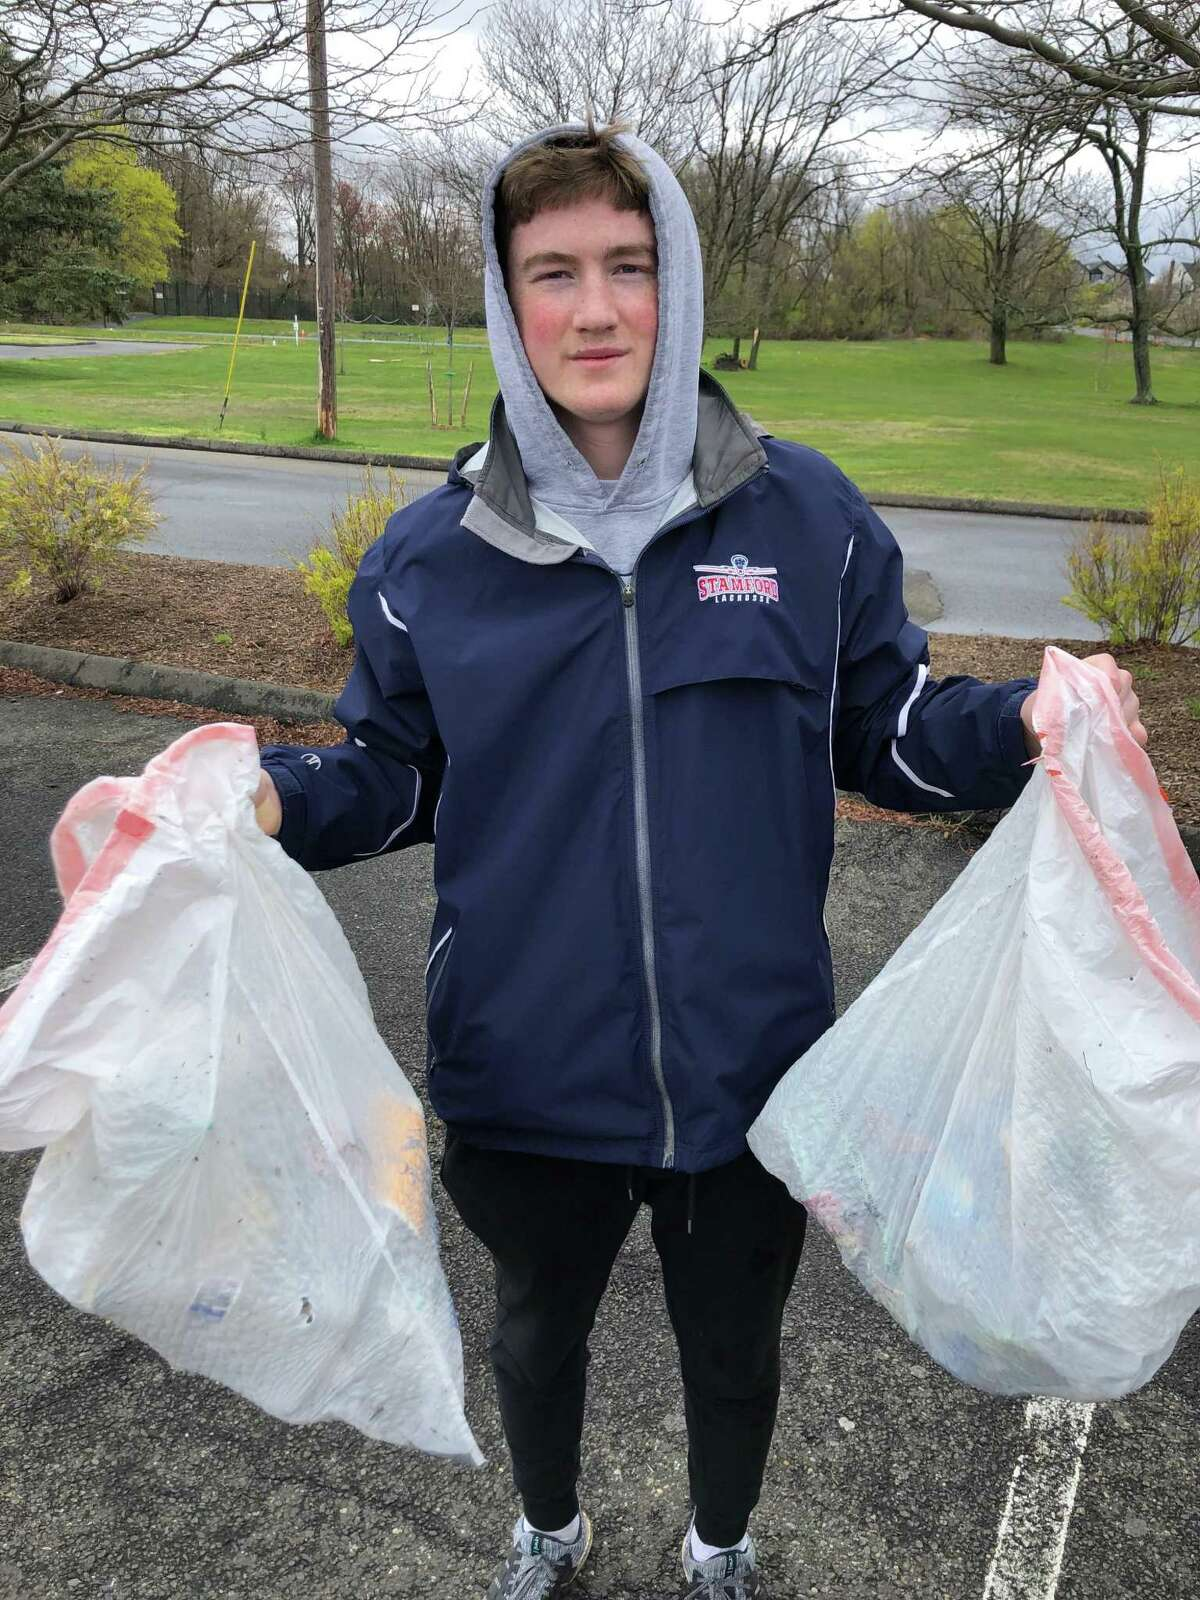 Jack Engel, a Westhill High School junior, picked up trash around his neighborhood on Earth Day. Engel created his own climate organization, called Clean2BGreen. For Earth Day, he inspired hundreds of his friends and family members around the U.S. to pick up trash in their respective neighborhoods.